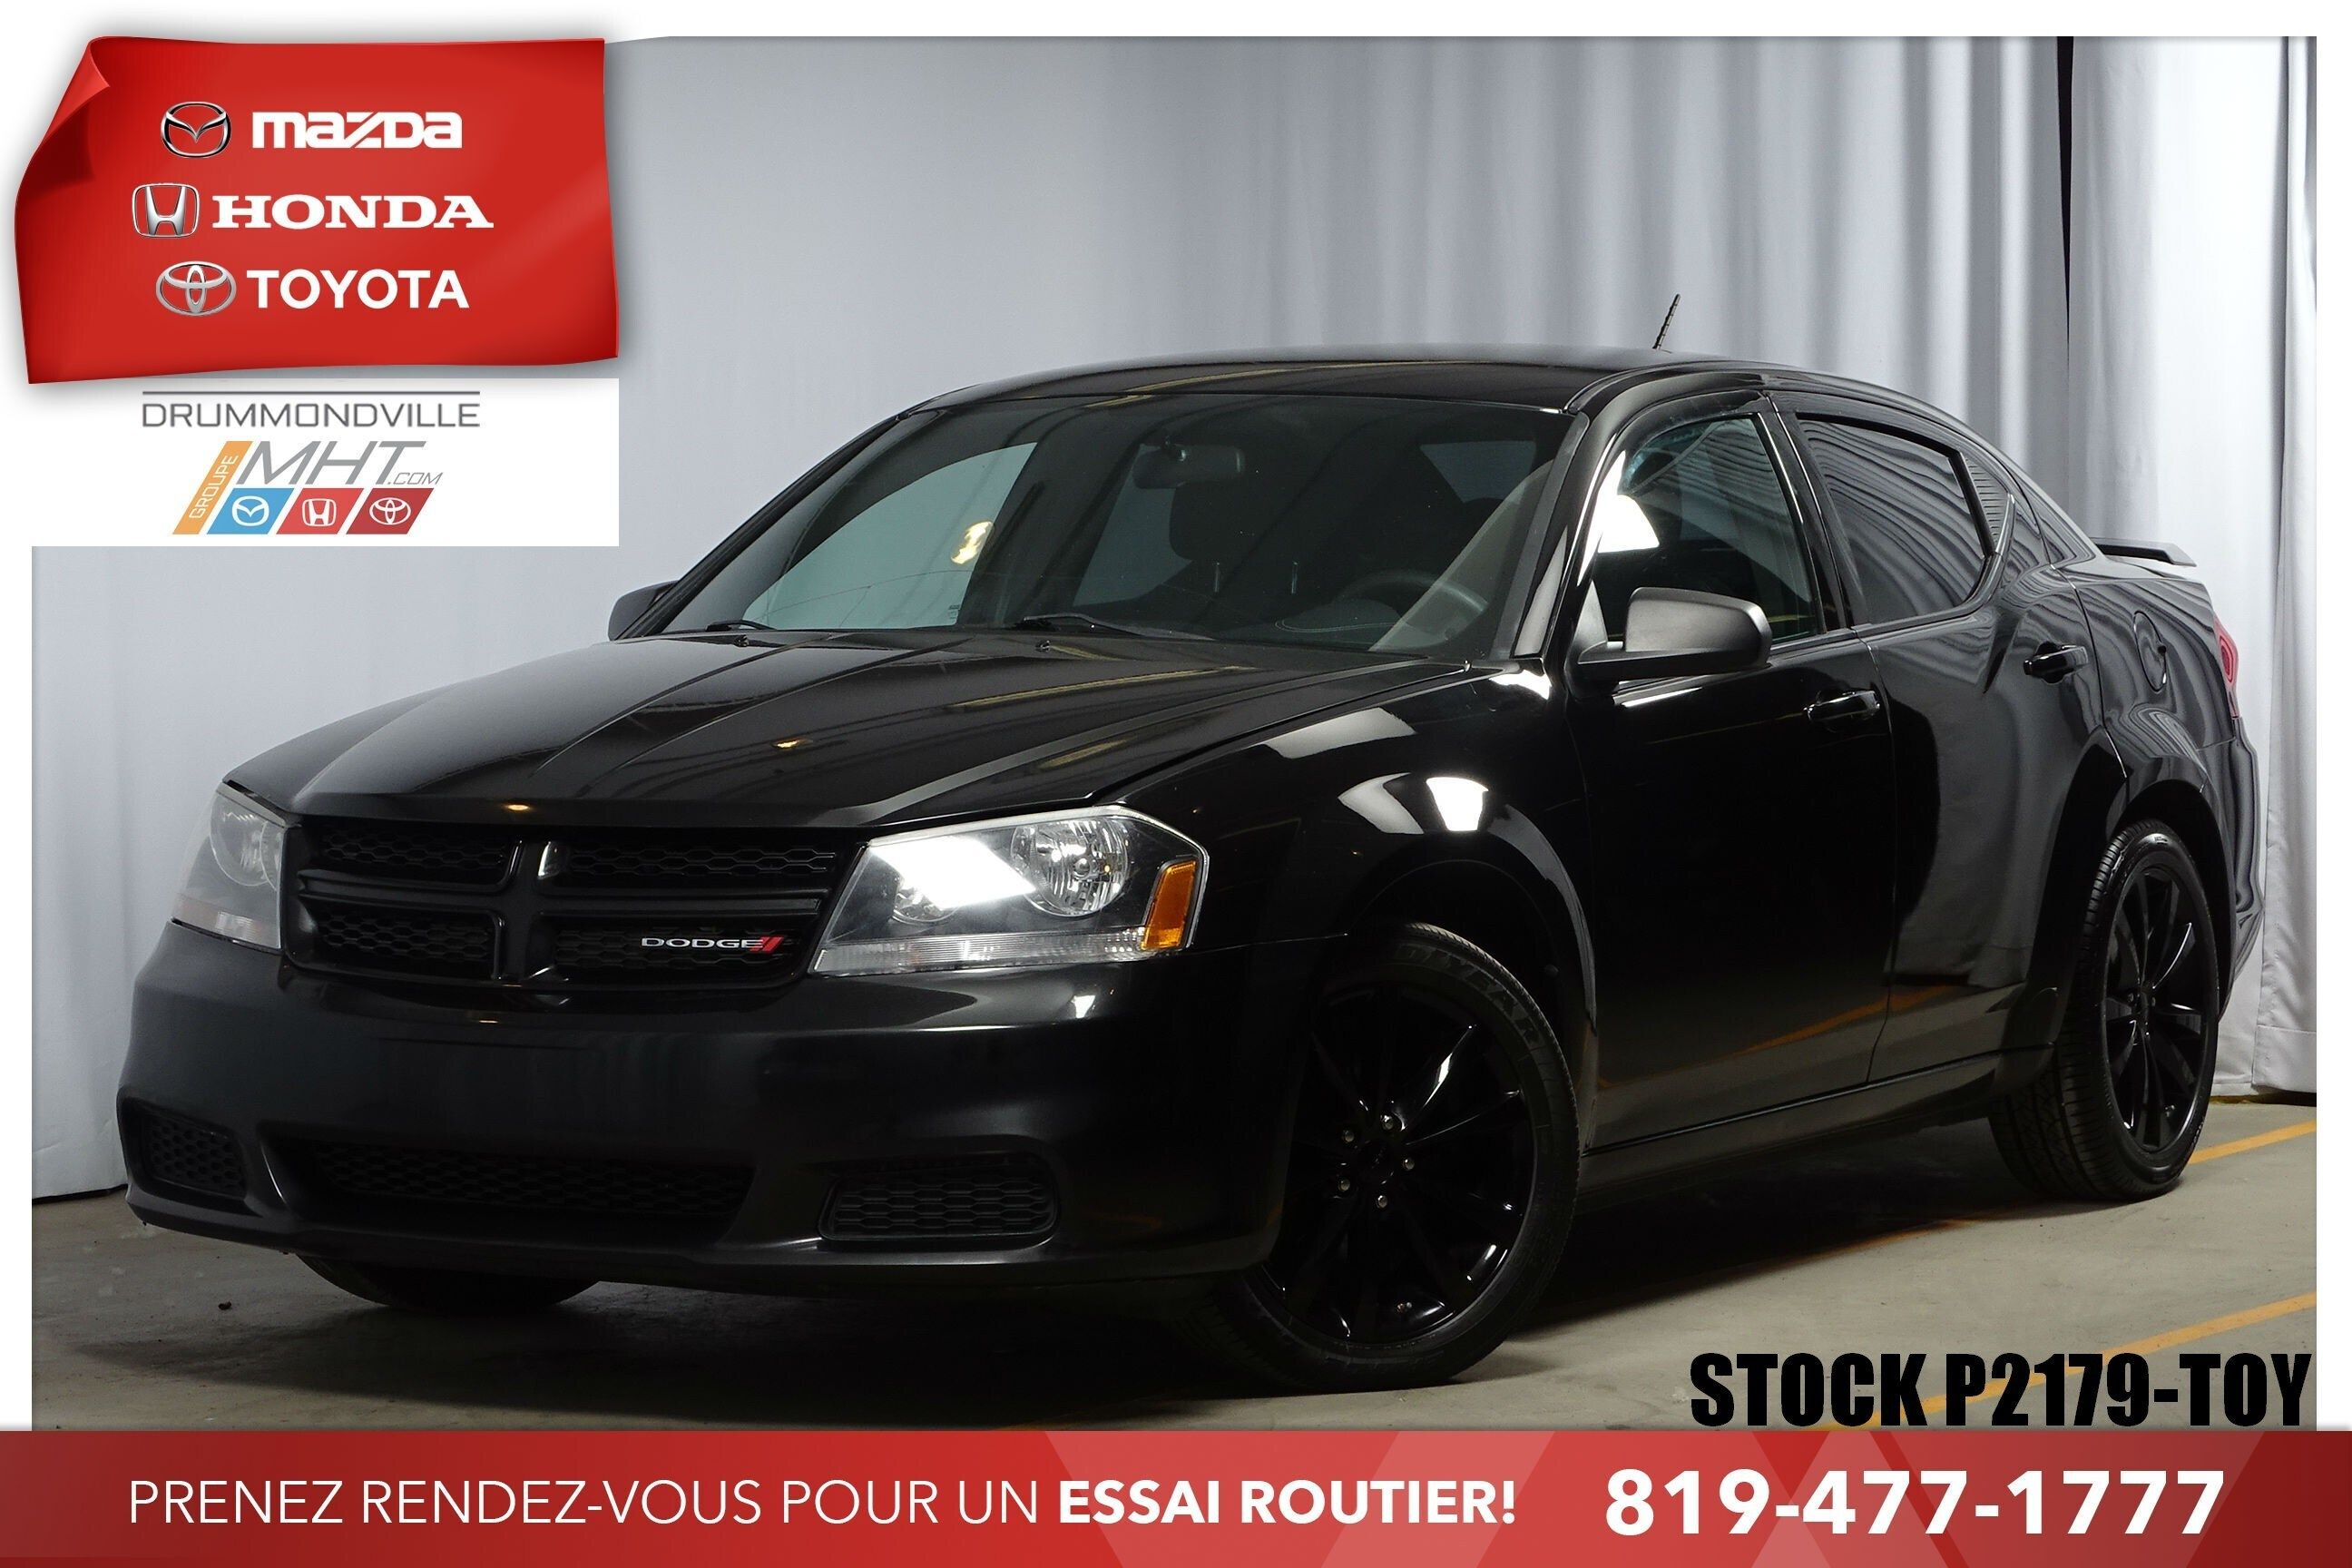 Mazda Drummondville Pre Owned 2013 Dodge Avenger R T Mags Cruise Climatiseur For Sale